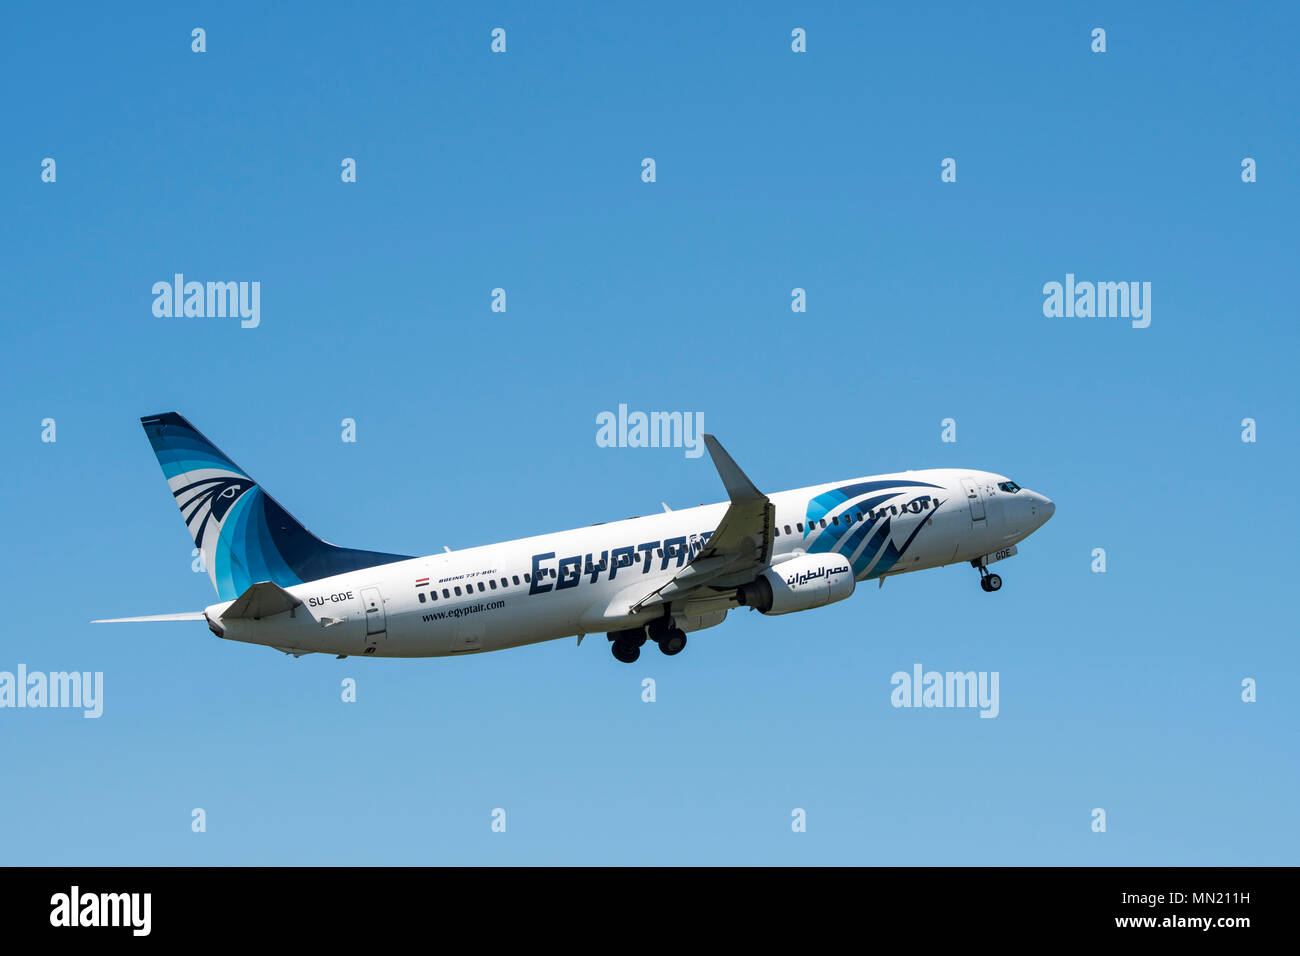 Boeing 737-800, two engine short- to medium-range, narrow-body jet airliner from EgyptAir, Egyptian airline in flight against blue sky - Stock Image